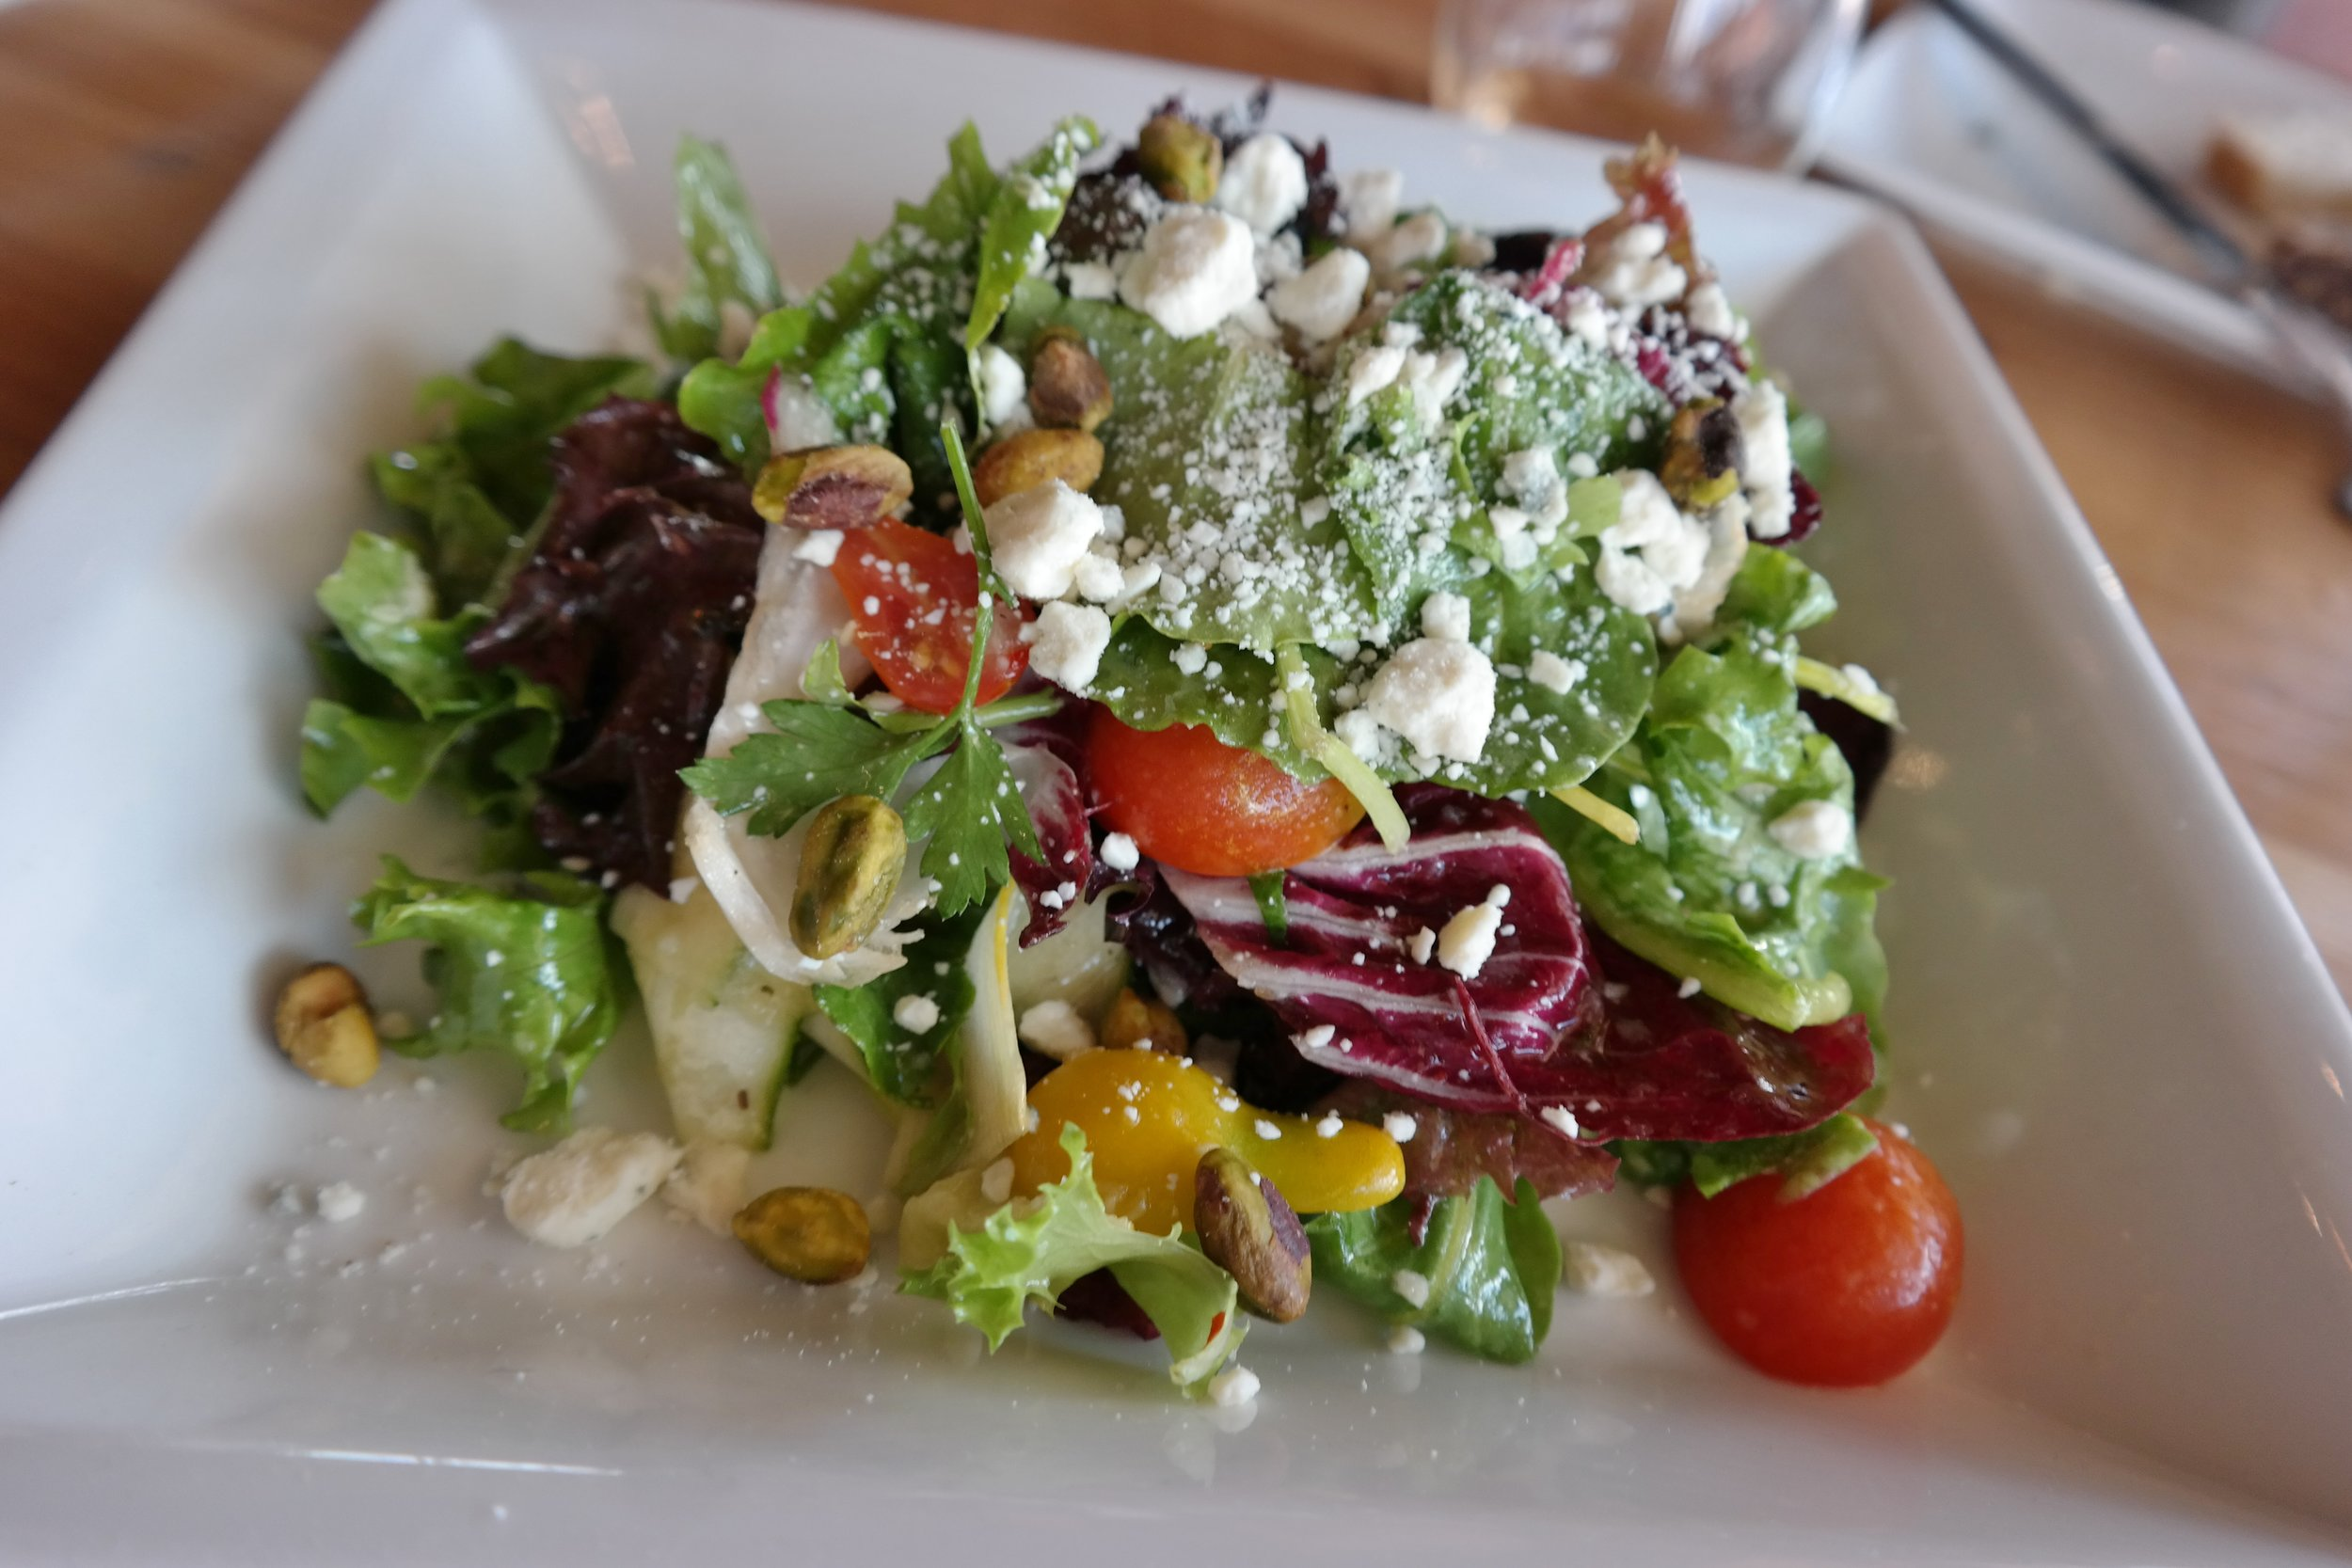 Seasonal salad at Merkin Osteria